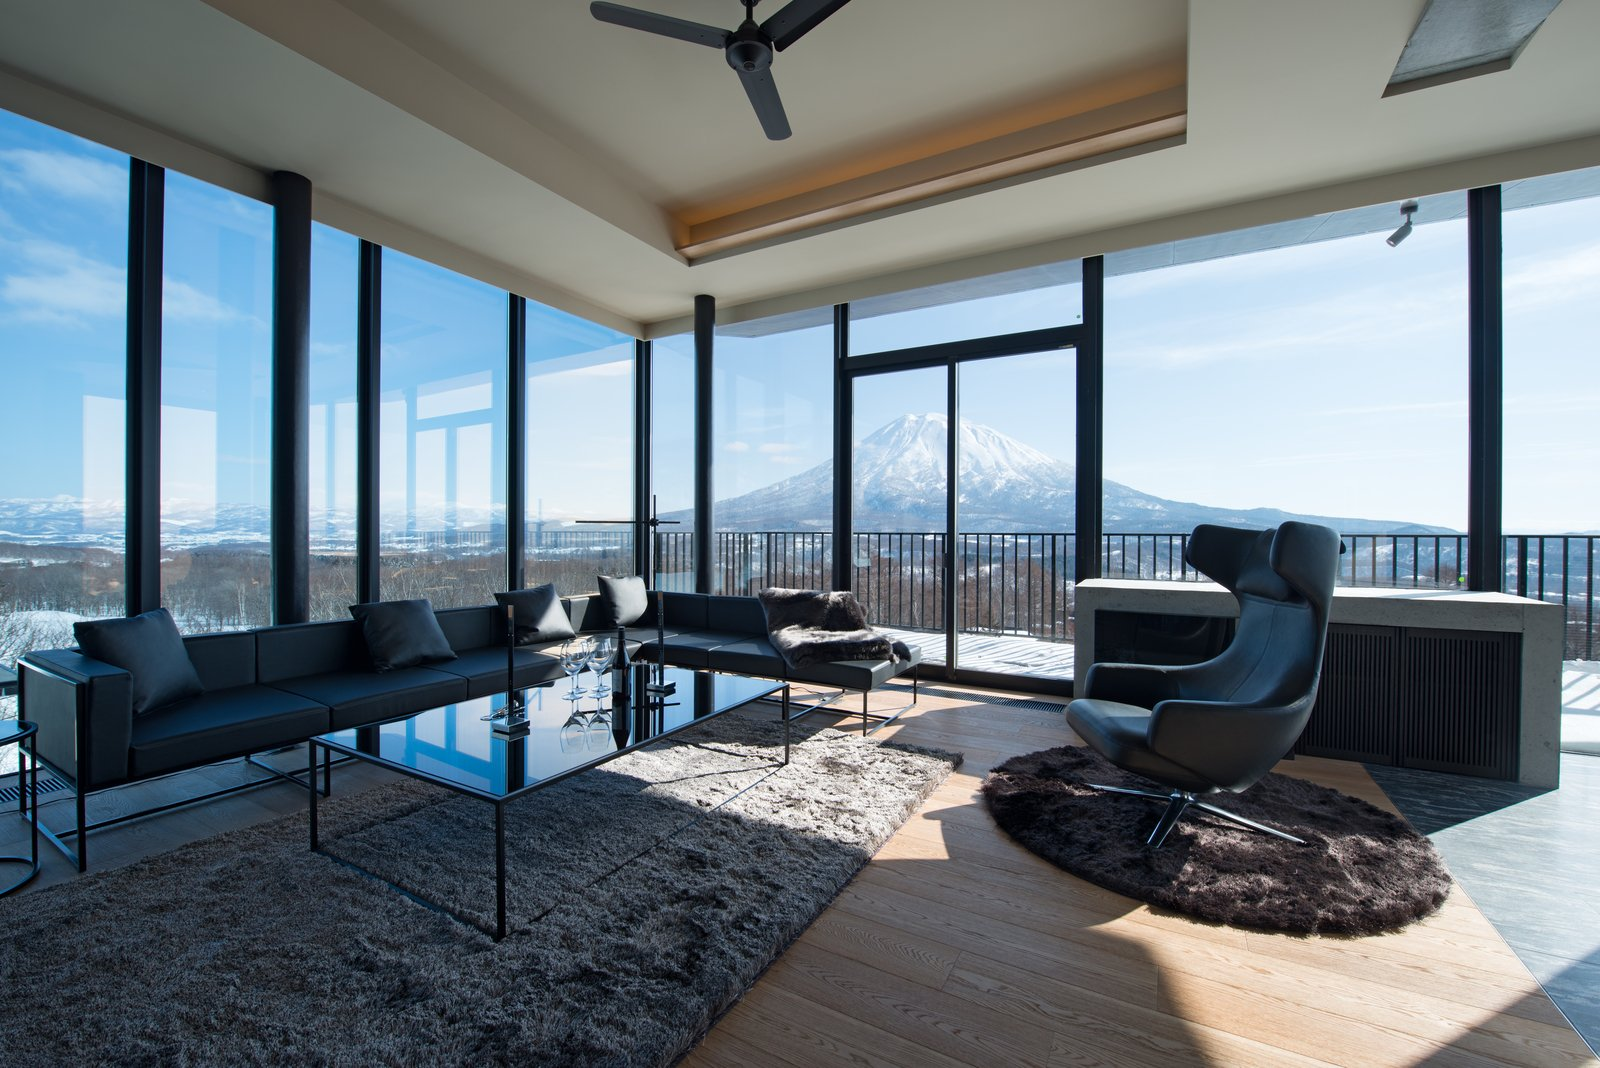 Room 601, the 2 bedroom penthouse in MUSE Niseko.